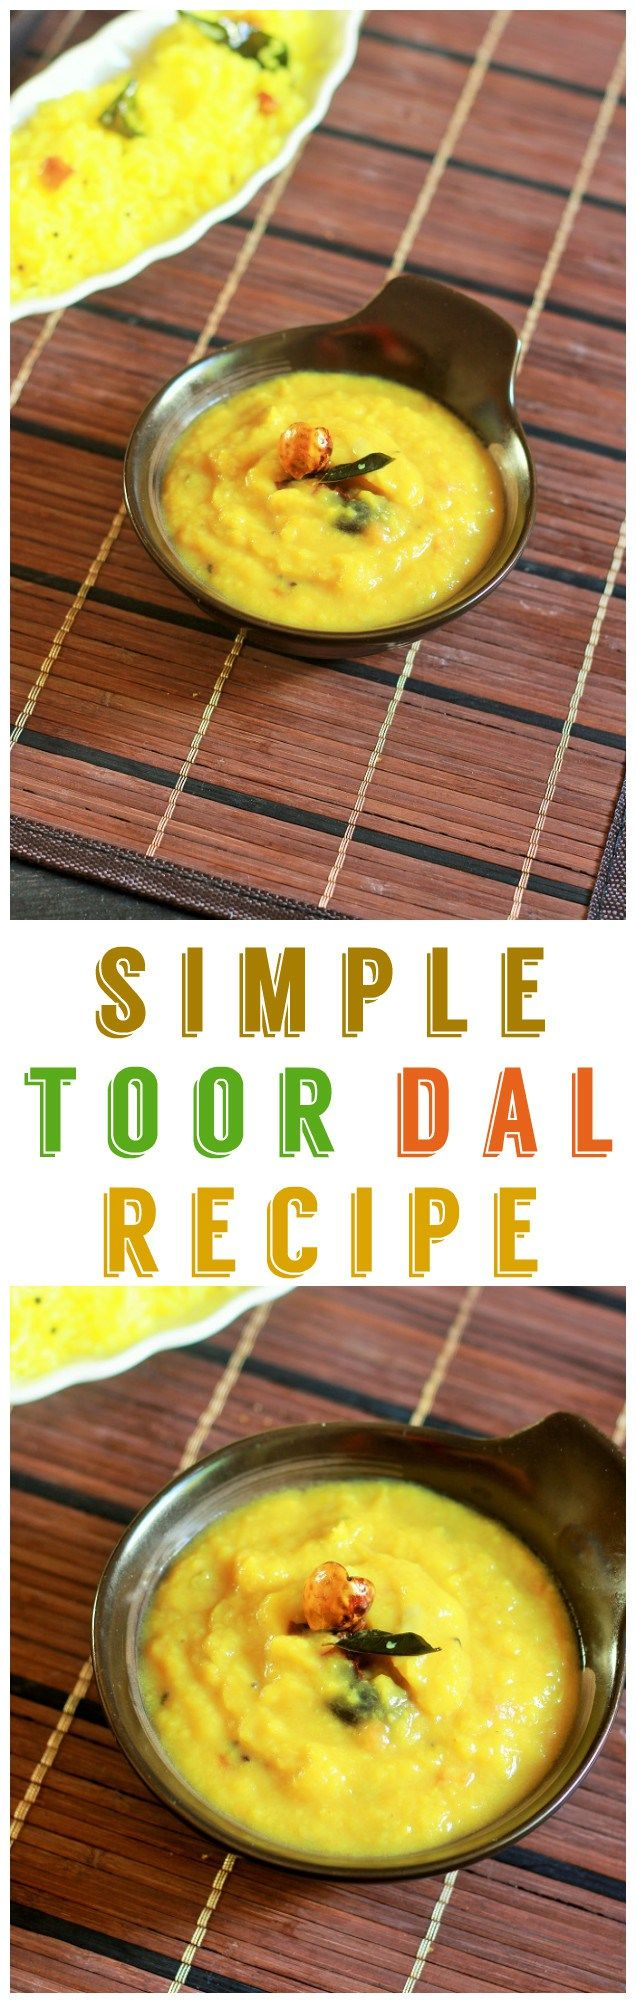 Toor dal recipe or split pigeon peas recipe is a very simple and very easy dish to make. There is no long list of ingredients or elaborate method involved. #dalrecipe #indiandal #toordal #daltadka #halalrecipe